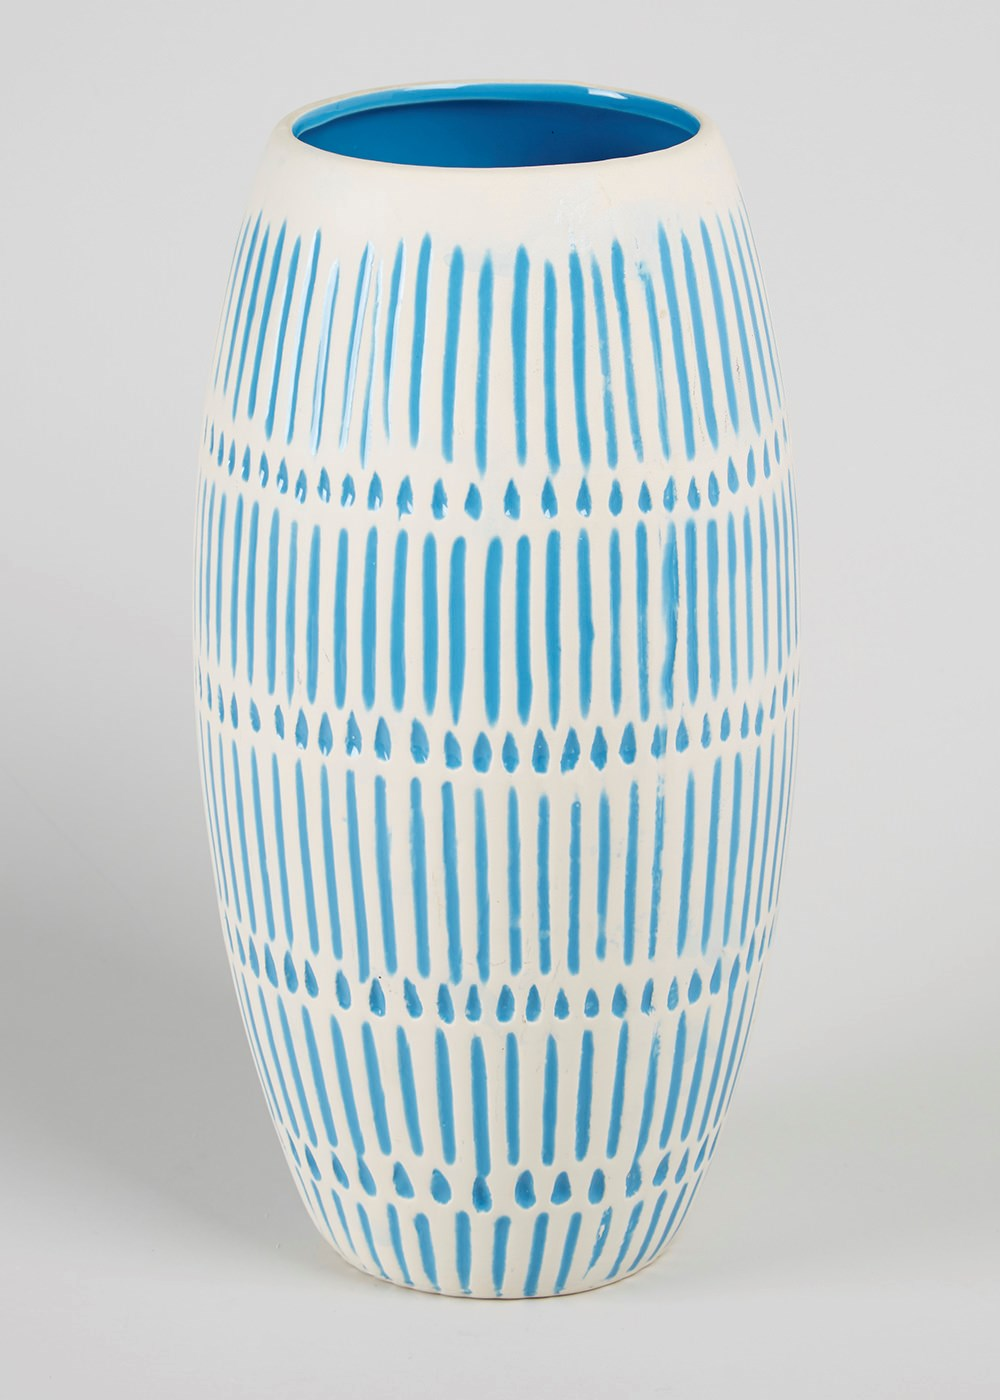 Aqua and white painted ceramic vase, perfect for an ocean inspired room scheme